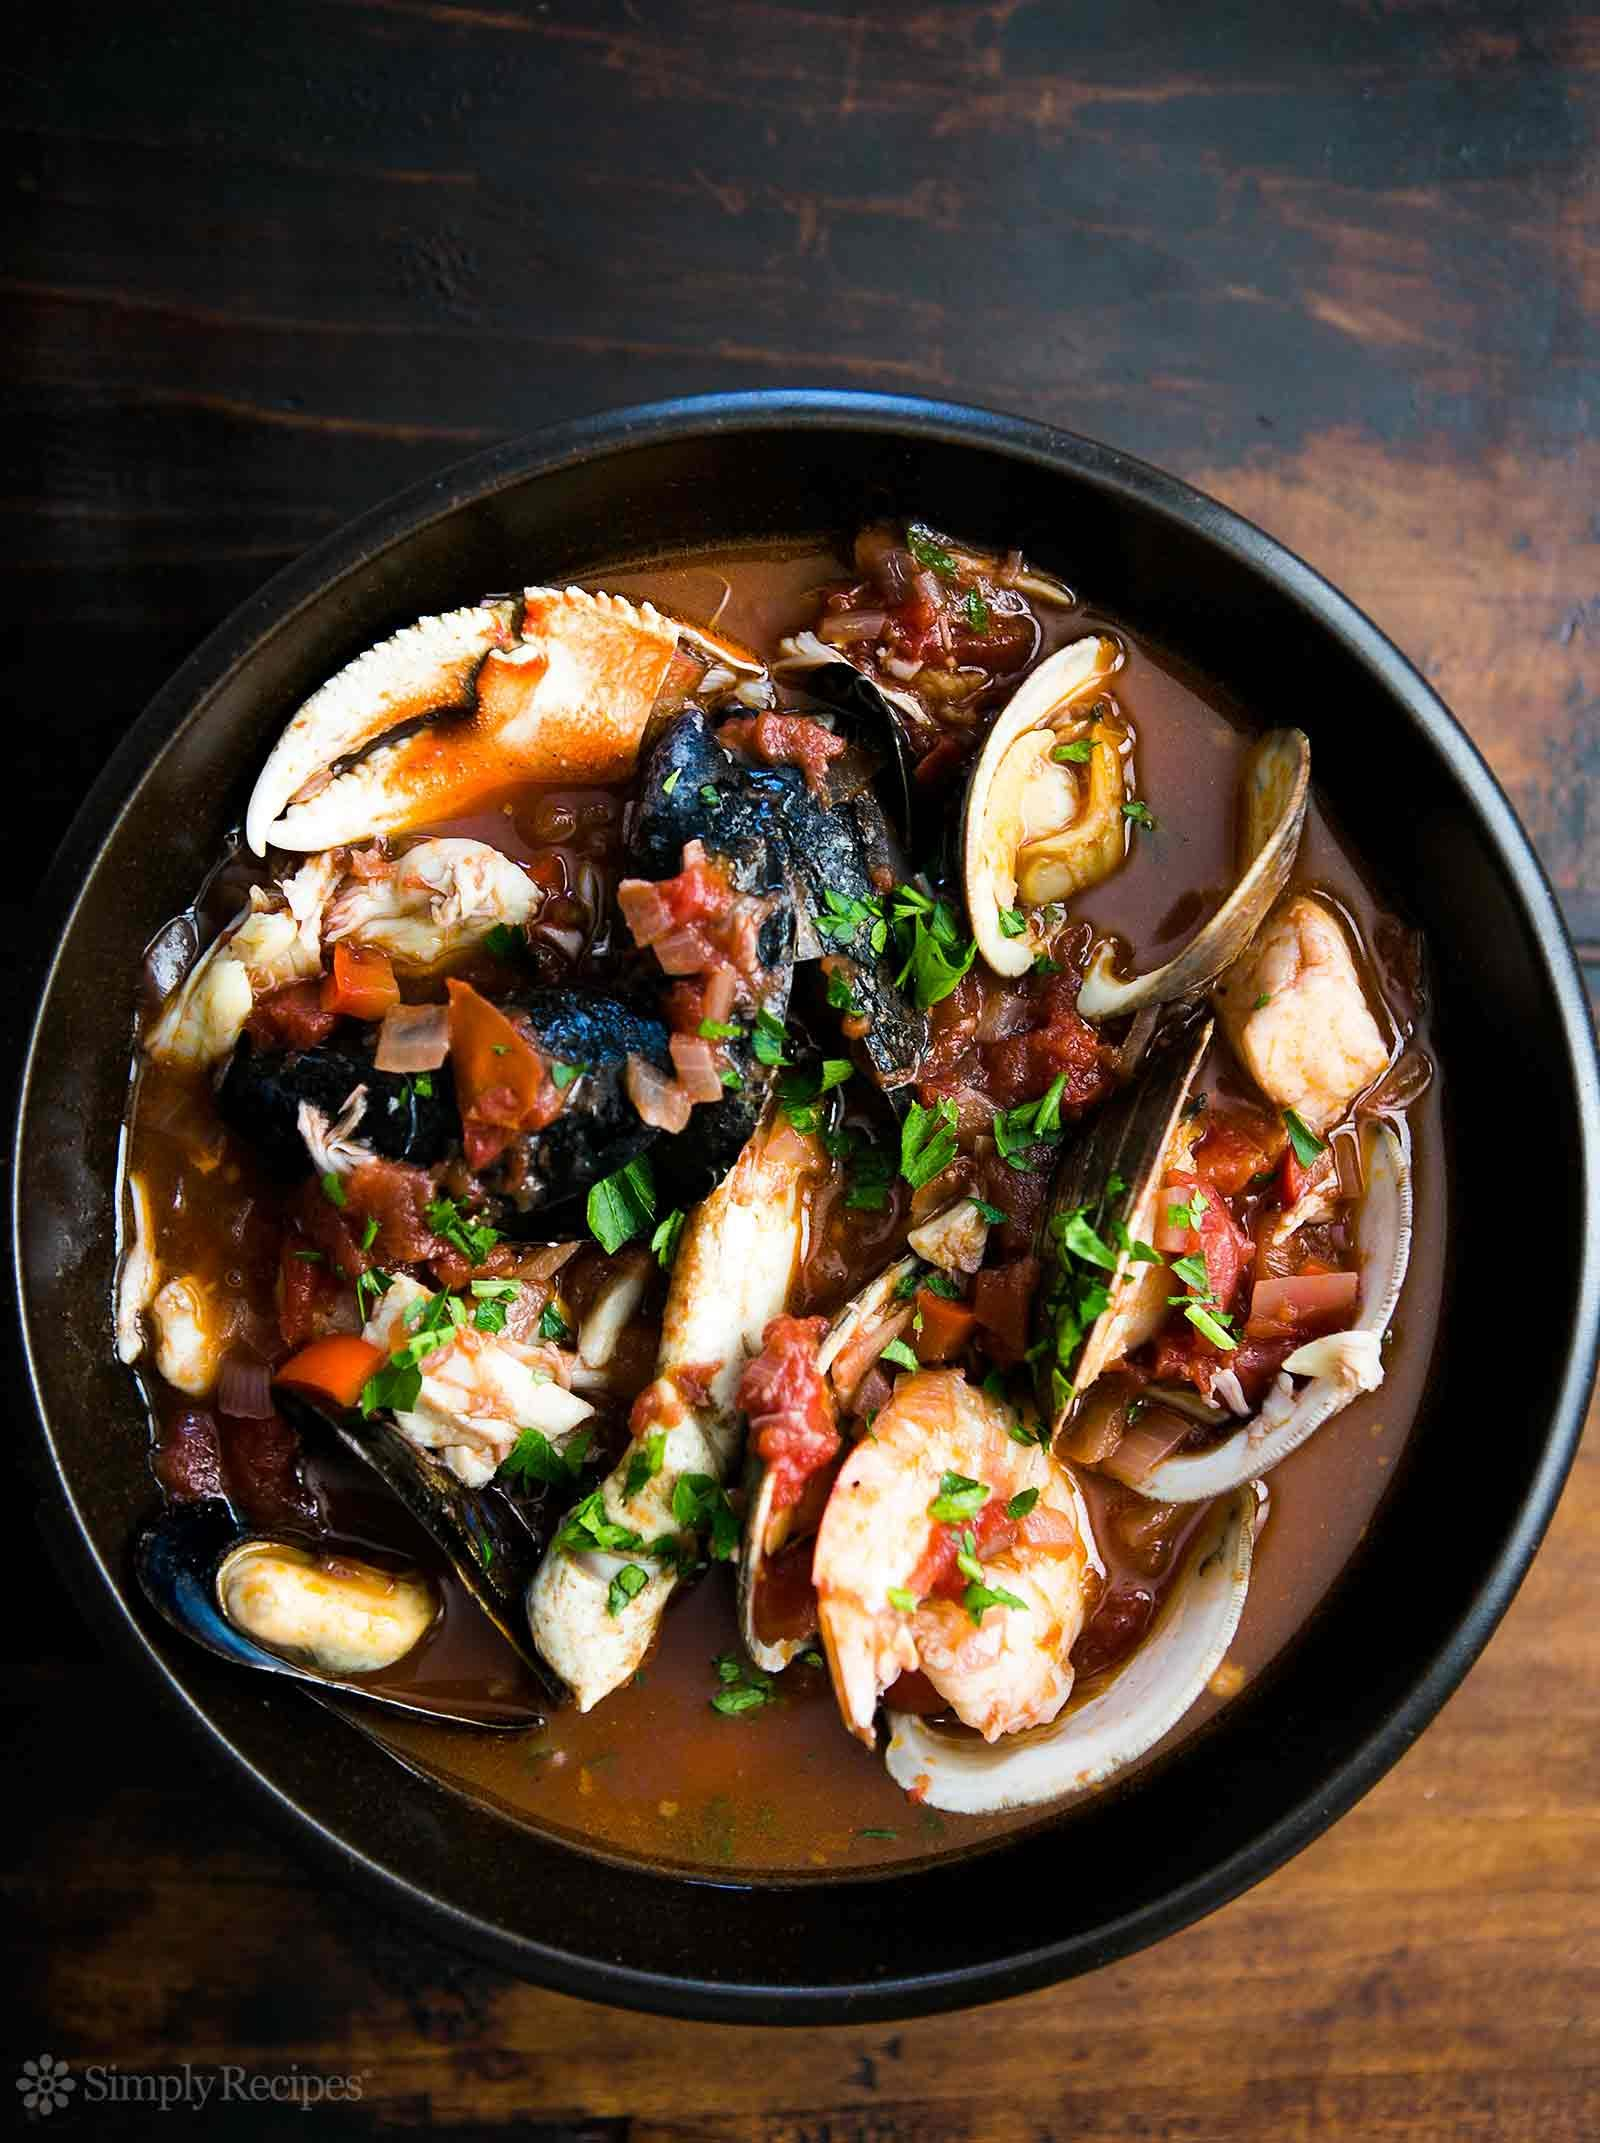 https://sites.google.com/a/signaturetastes.com/smokealarmmedia/recipes/tadich-grill-cioppino